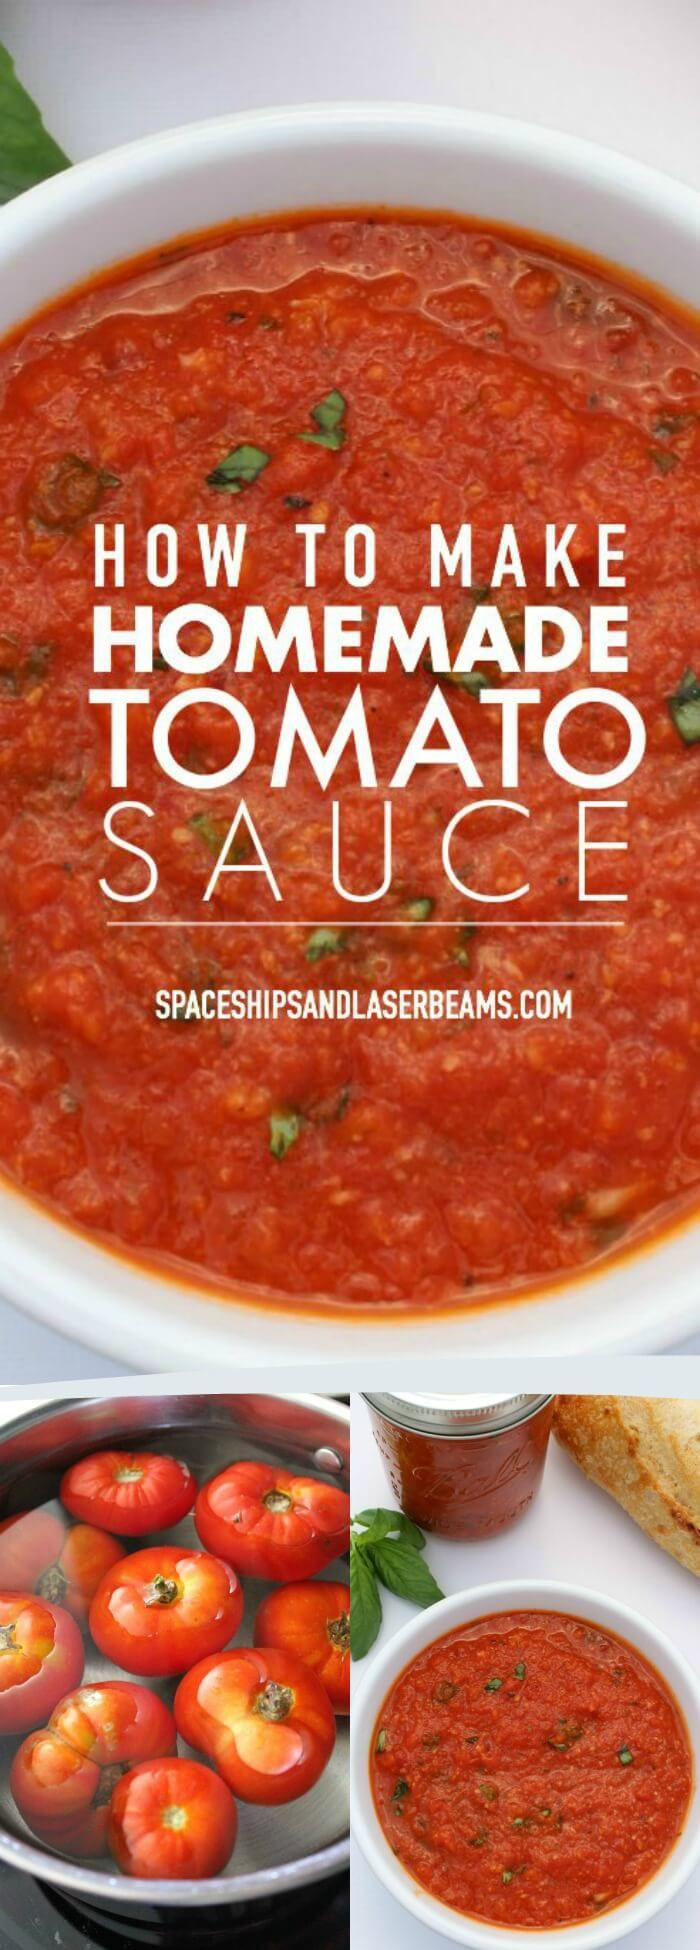 How To Make Tomato Sauce From Fresh Tomatoes  Best 25 Tomatoes ideas on Pinterest